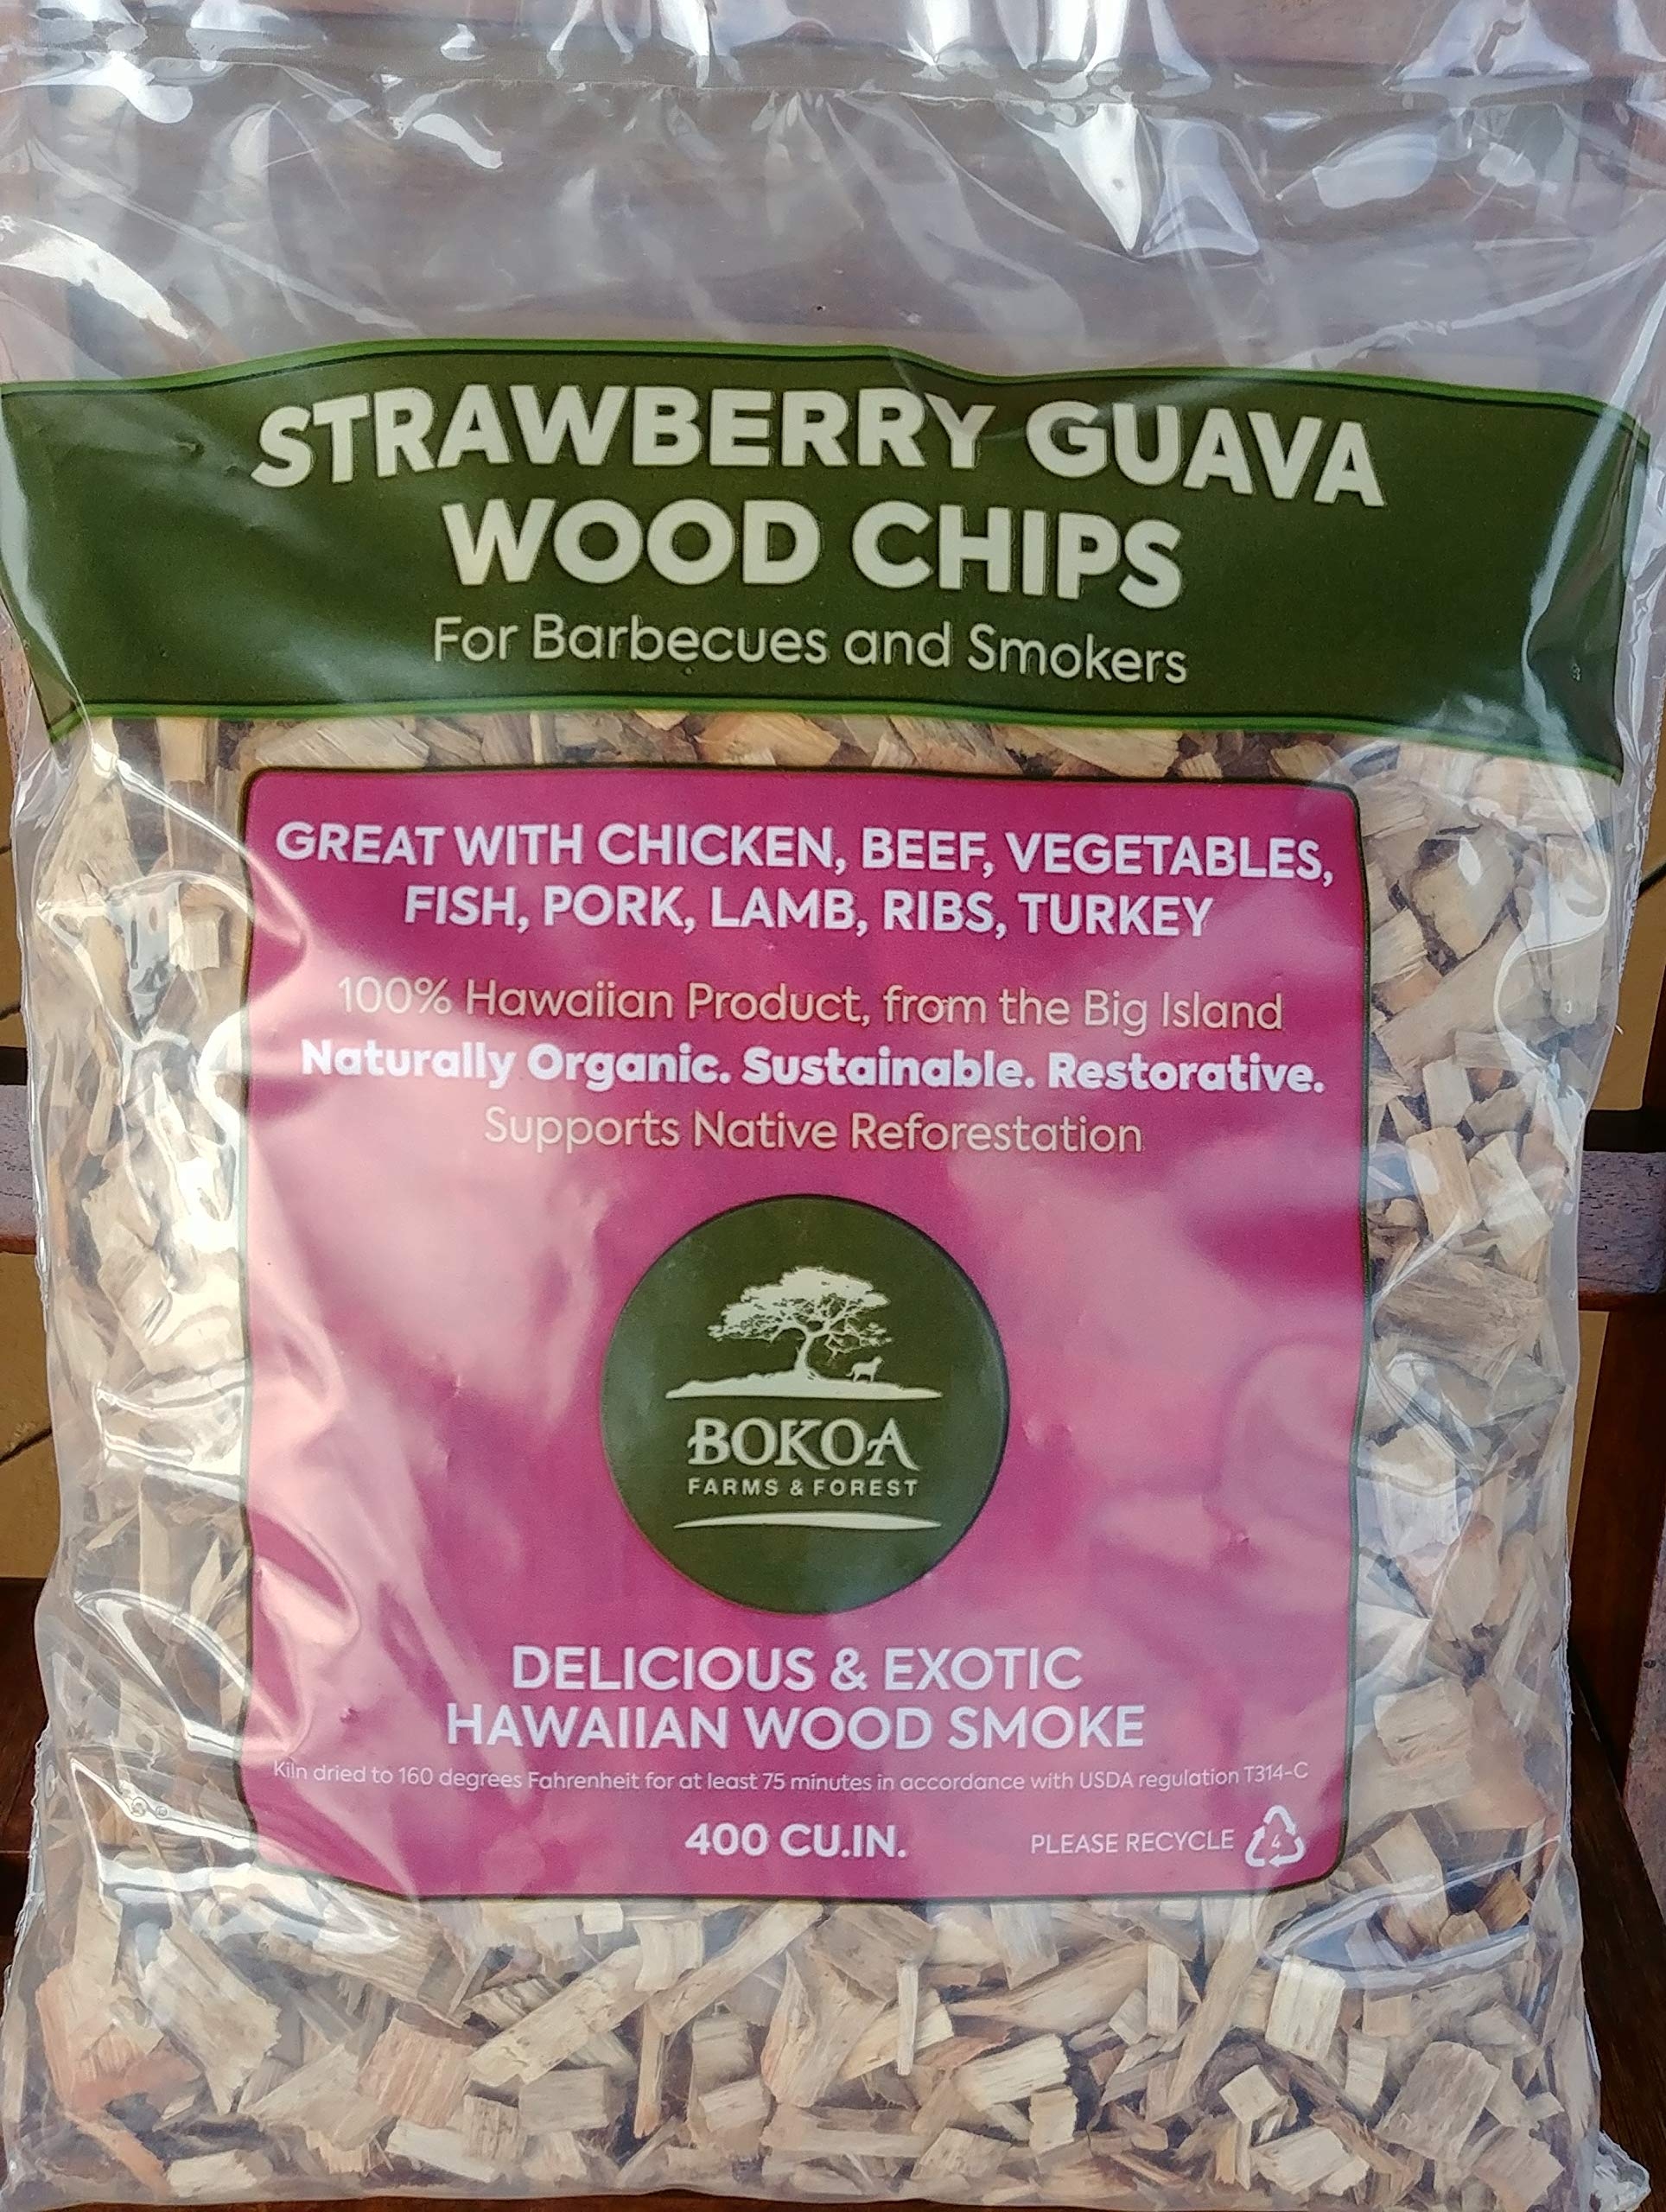 Bokoa Farms and Forest Strawberry Guava Wood Chips from Hawaii Big Bag 4 lbs/400 Cubic inches (1.7 gallons) by Bokoa Farms and Forest